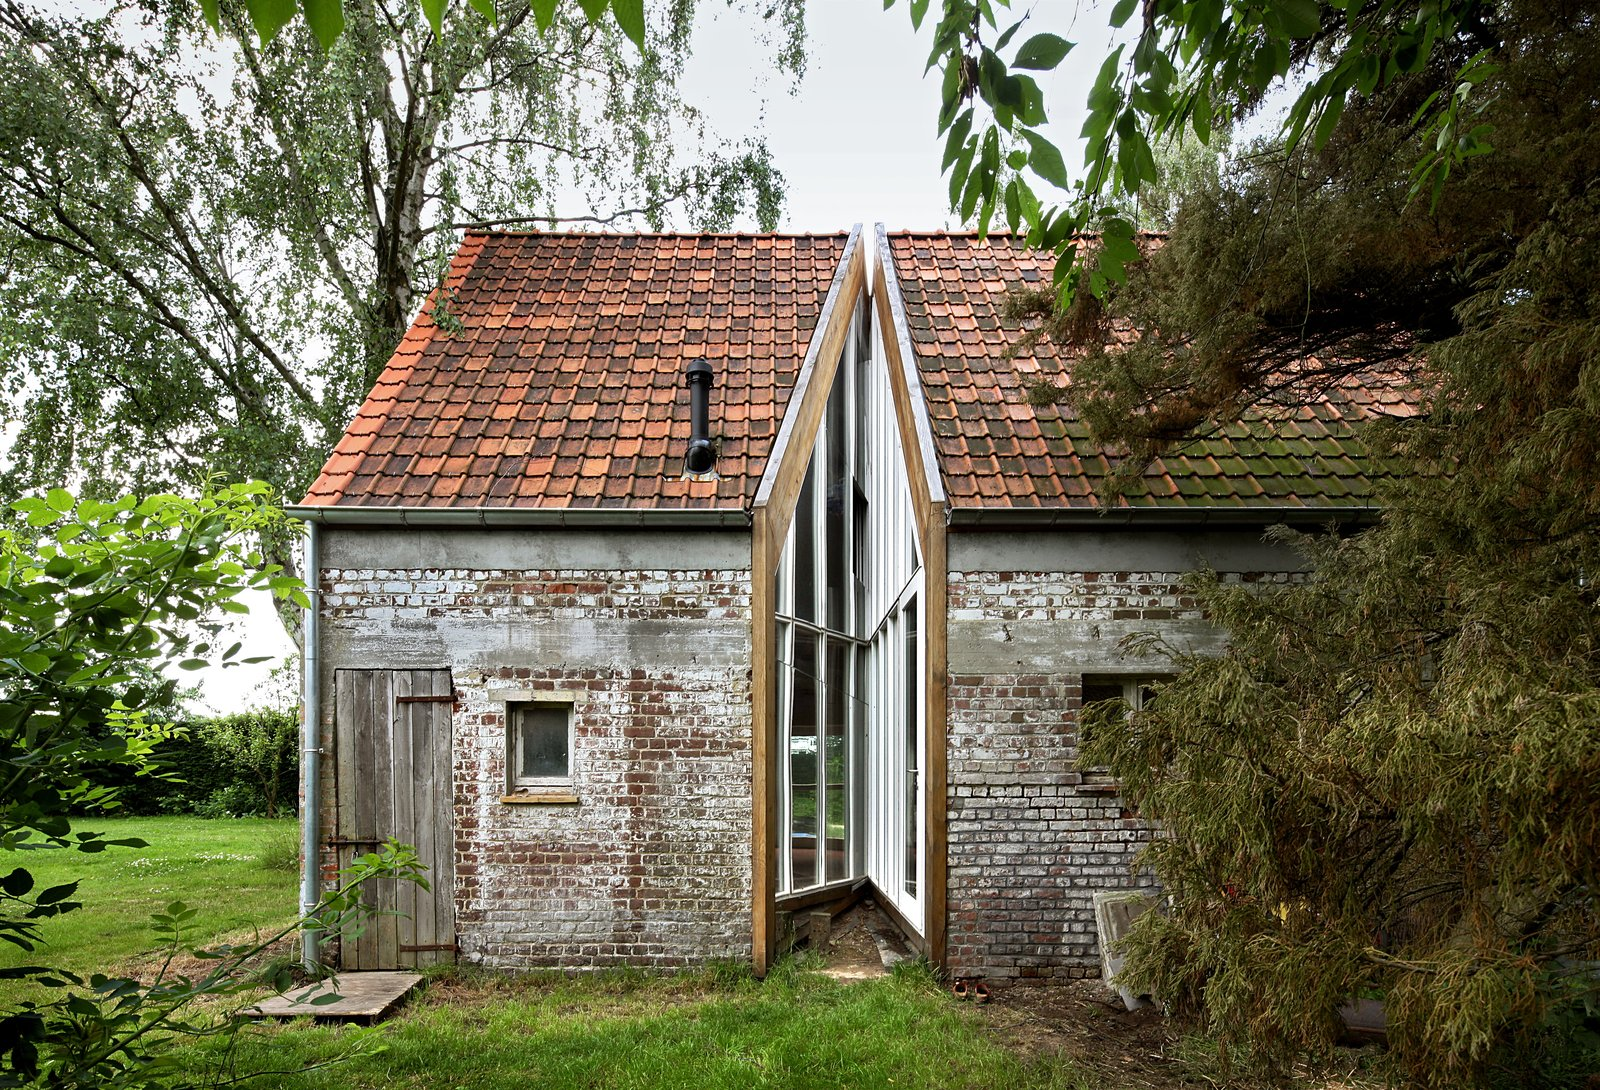 For this old farm building in the back garden of a larger set of farm buildings in Flanders, Belgium, Architecten de Vylder Vinck Taillieu converted this original structure into a modern home for the family's daughters. The simple incision of glass and mirrors brings light and successfully divides the space inside into separate rooms.  Photo 13 of 17 in A New Book Examines the Art of Breathing Life Into Forgotten Architecture